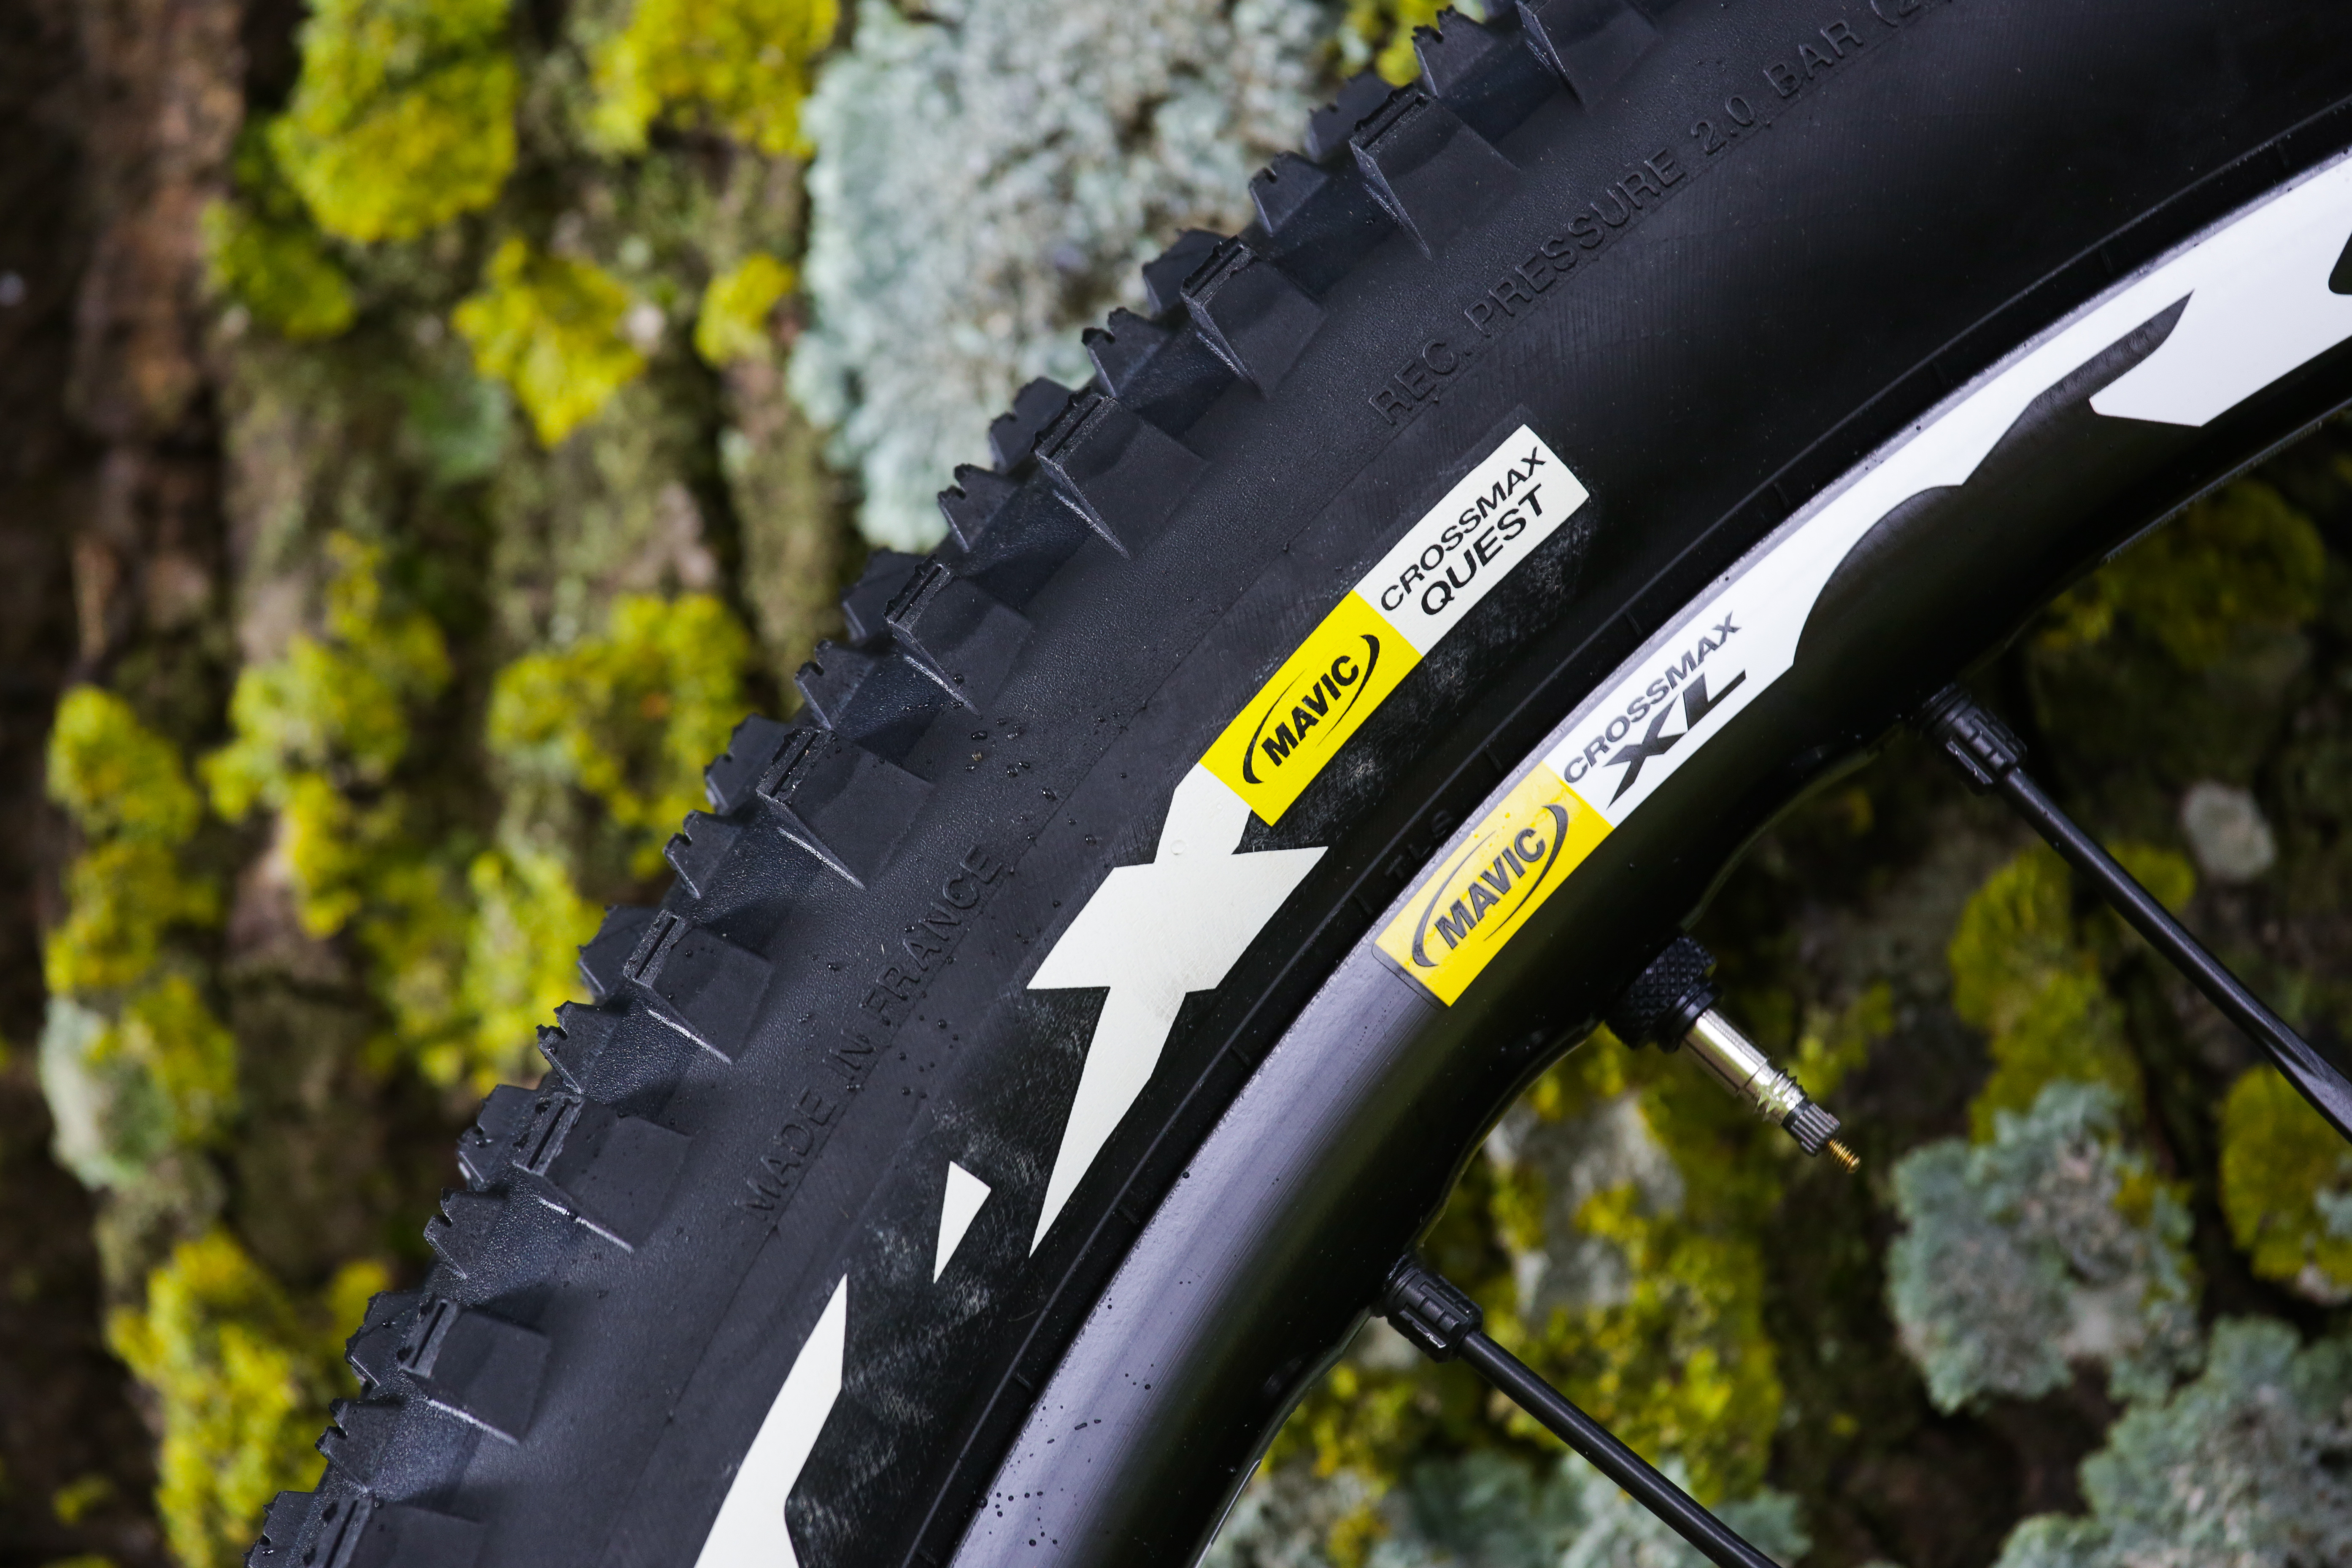 The Crossmax XL Wheel-Tire System is centered around 23-millimeter-wide rims with Fore drilling, 24 Zicral spokes and Quest tires with reinforced casings and a grippy 'Contact' compound.